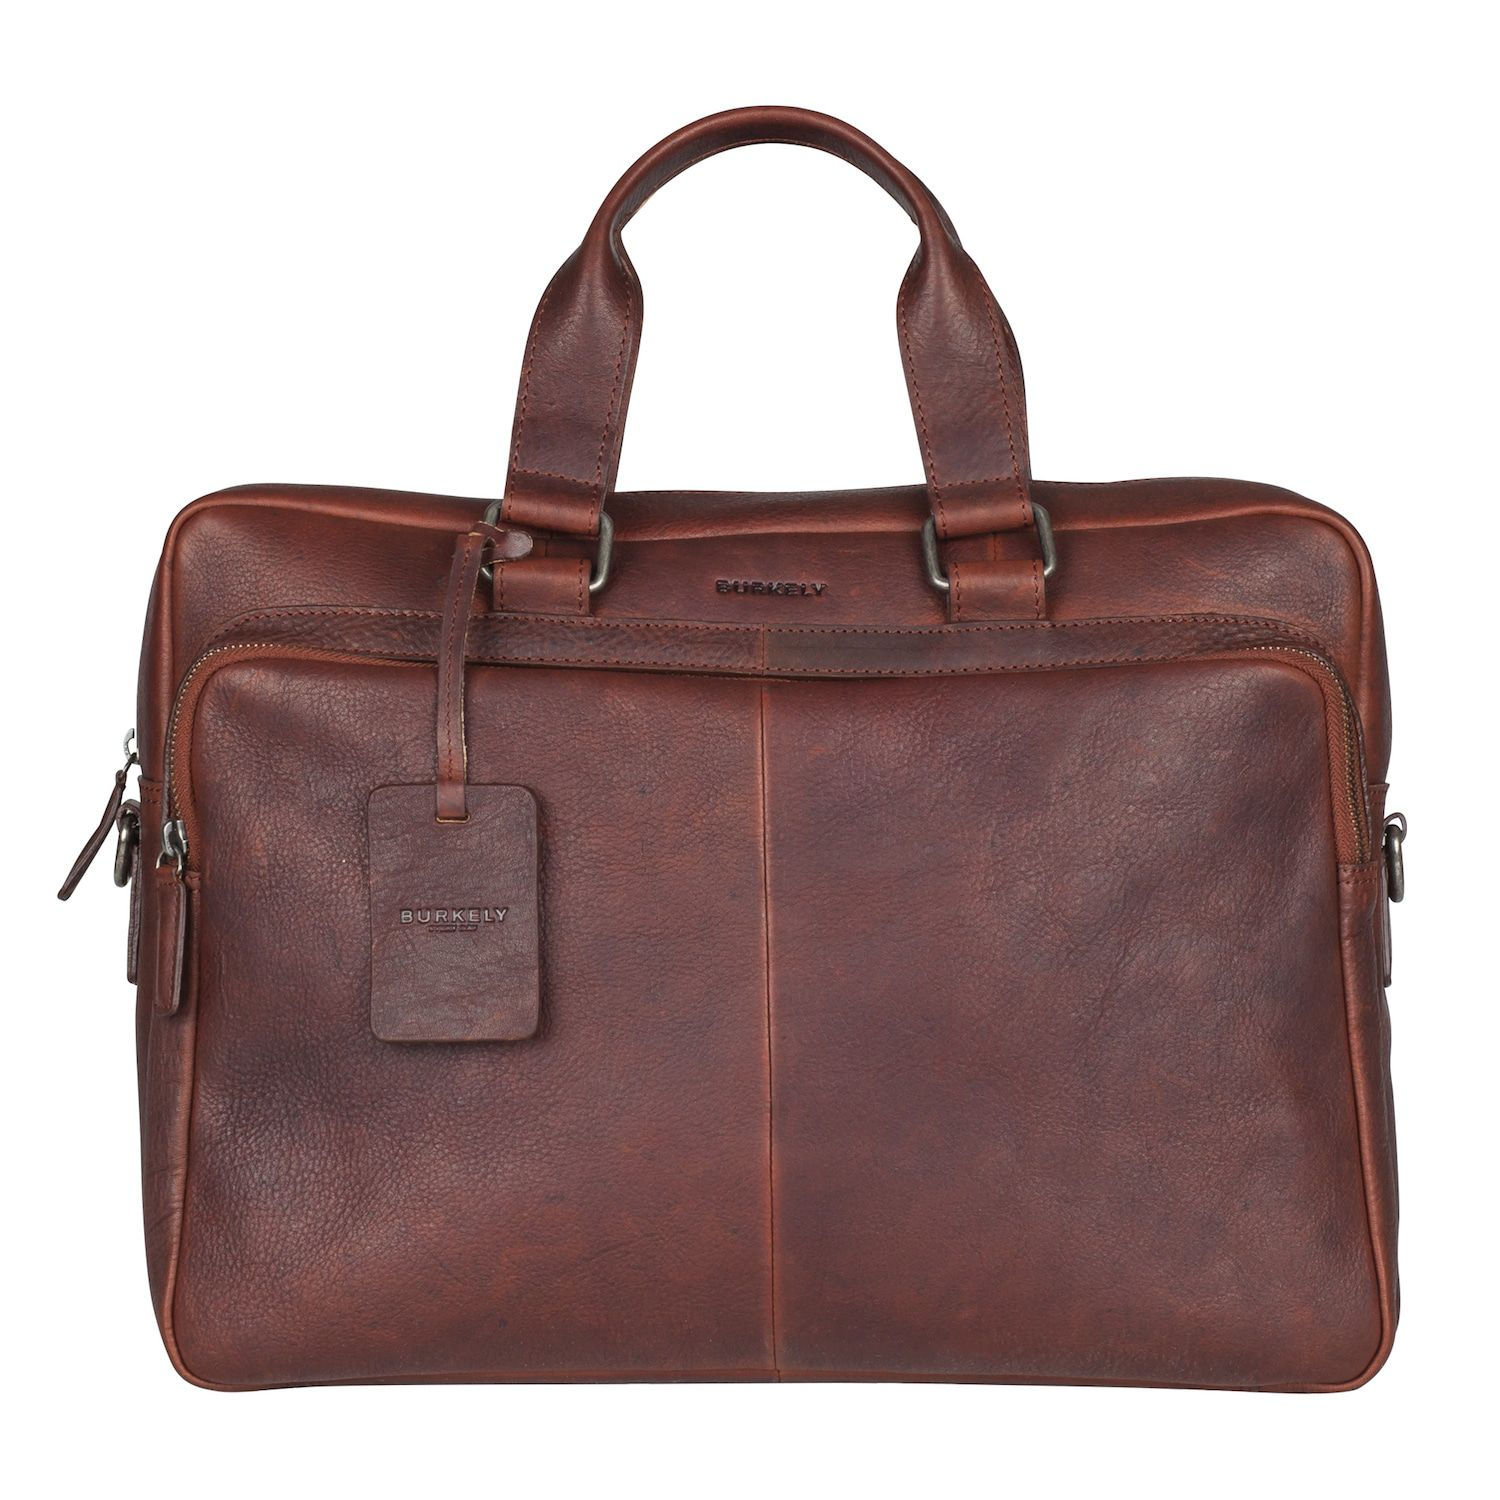 Burkely Antique Avery Workbag Brown 15.6 inch